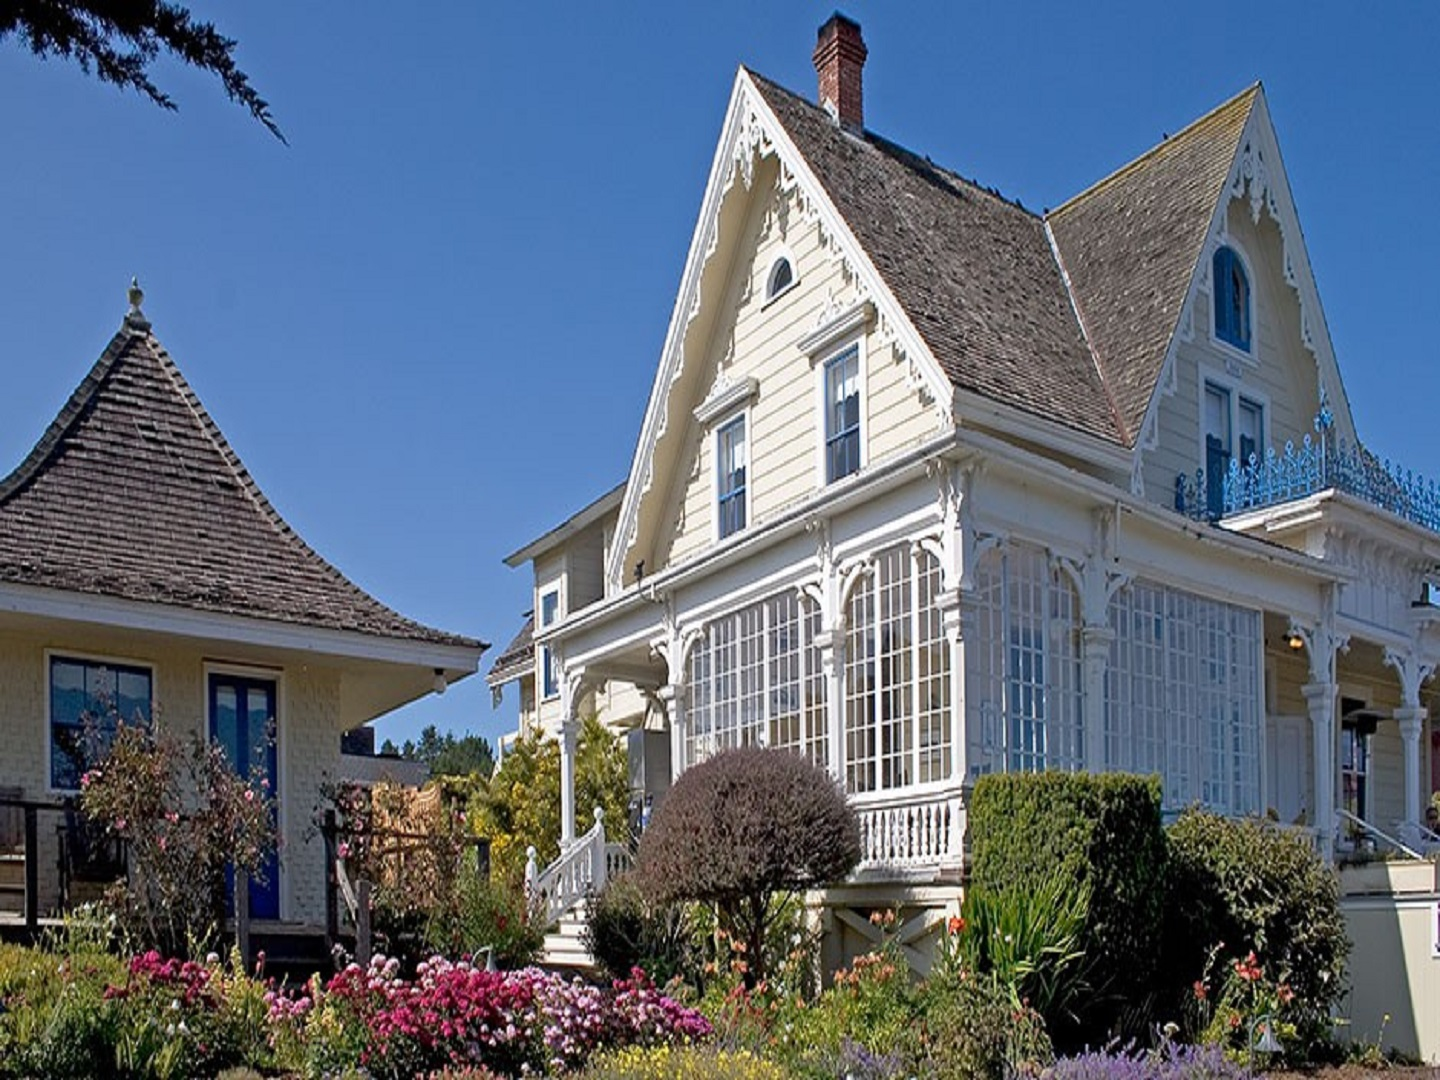 A statue in front of a house at Mendocino Inn & Guest House.